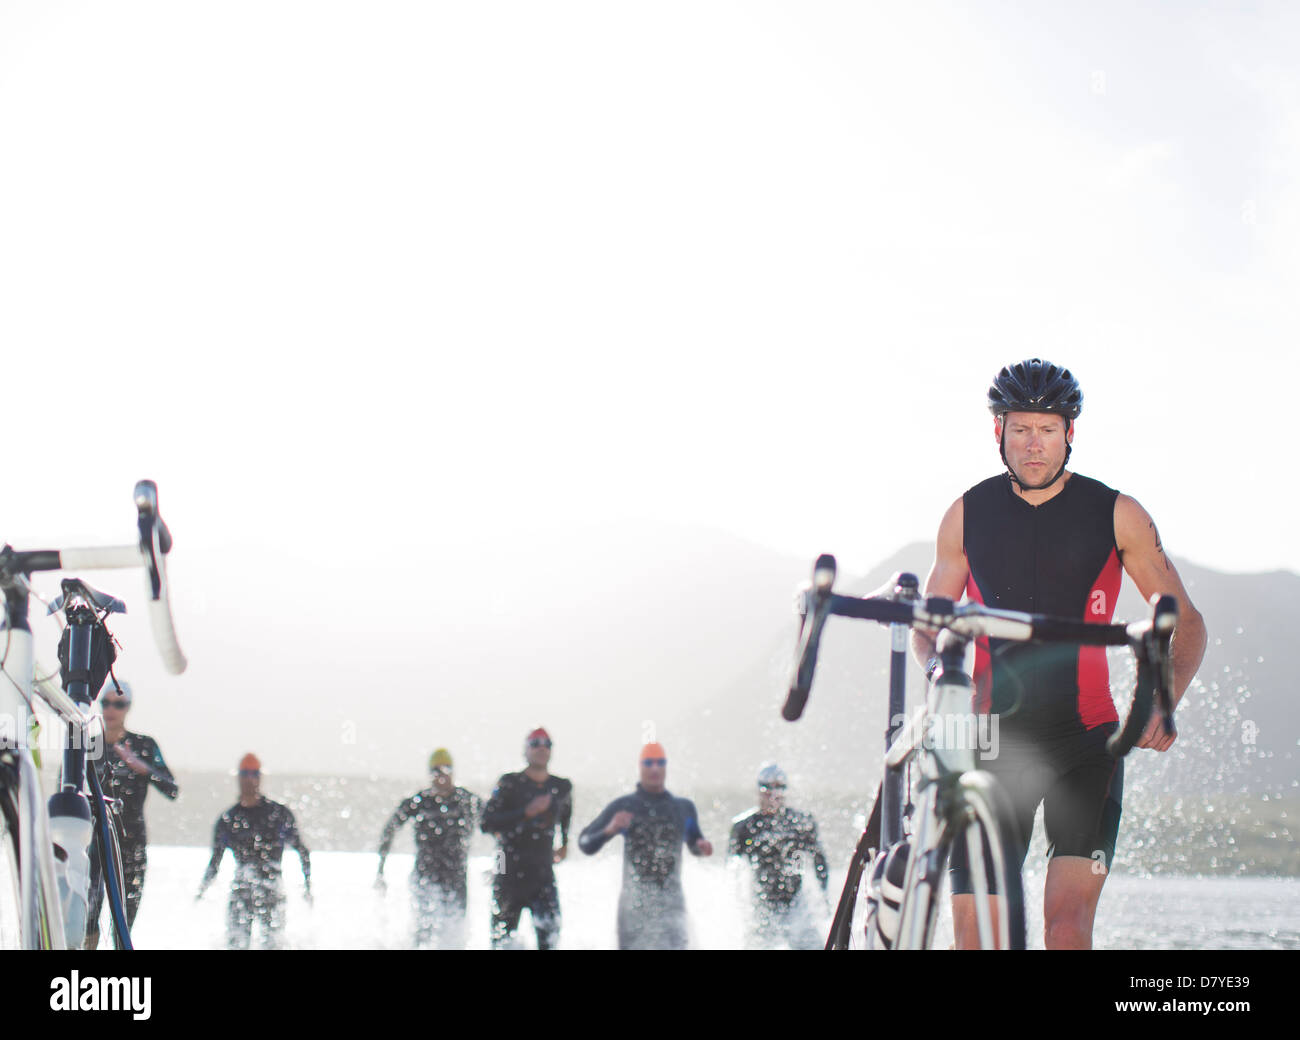 Triathletes emerging from water, - Stock Image